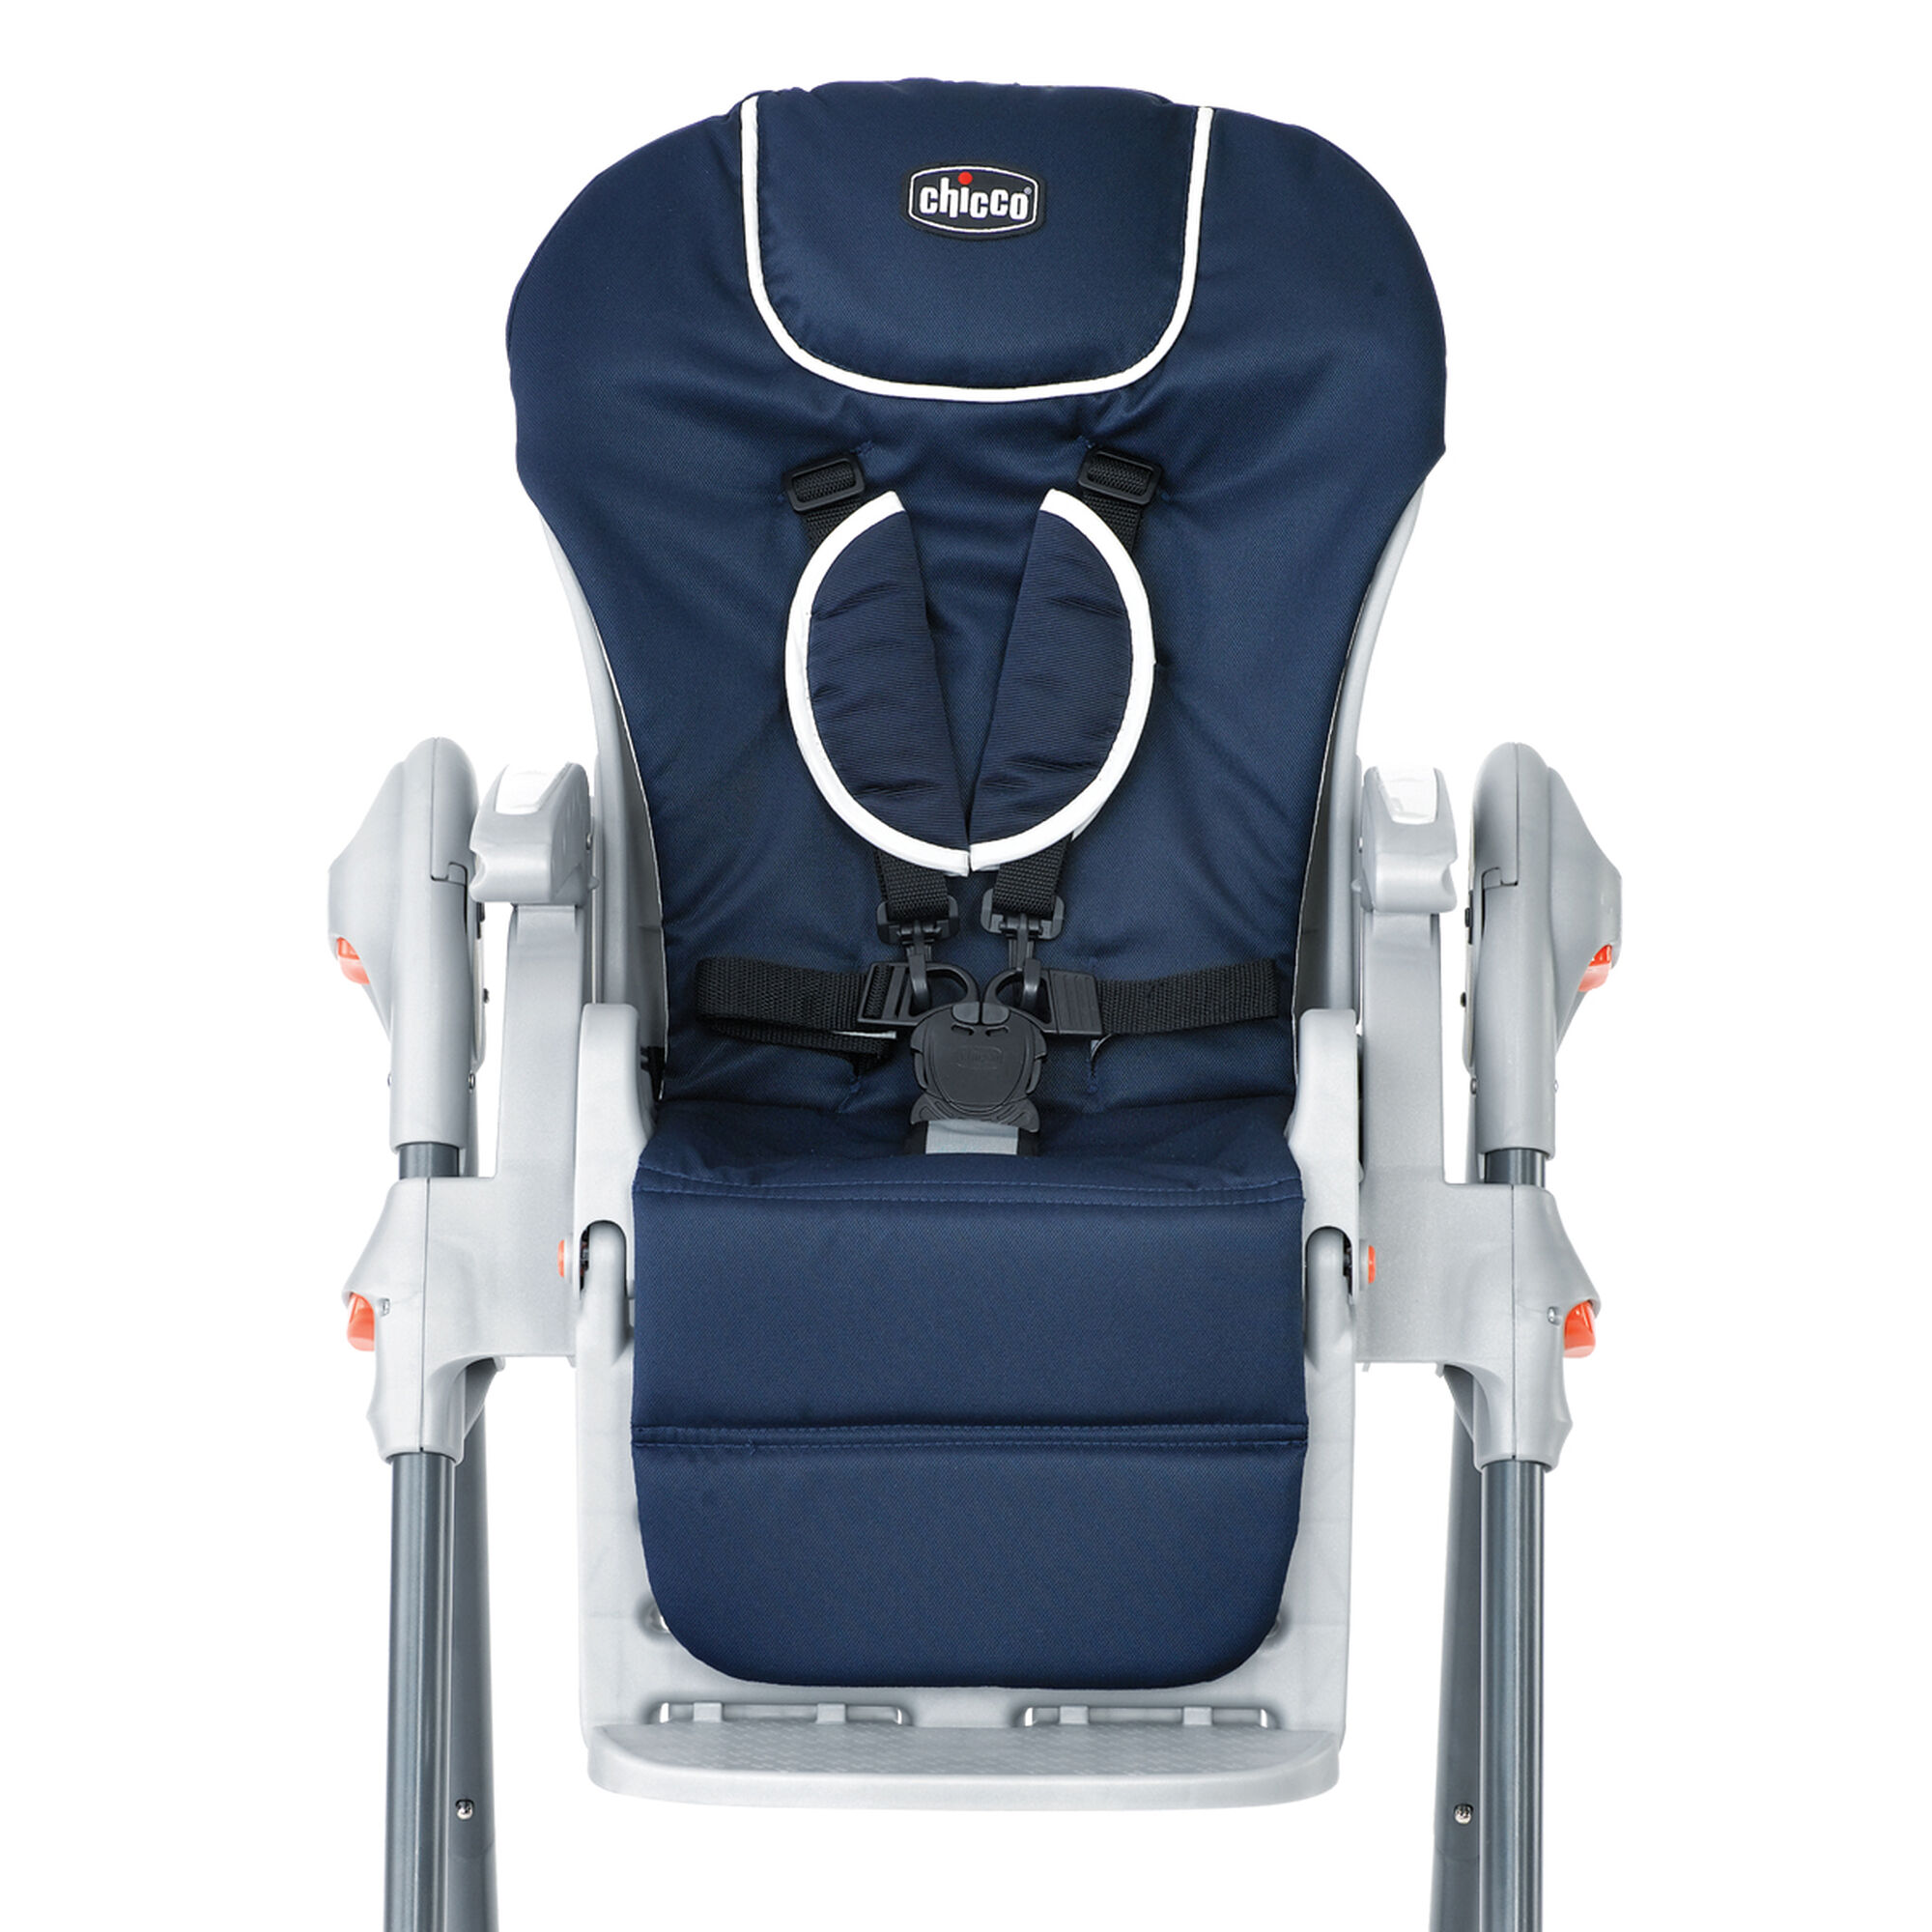 Find the best Chinese High Chair suppliers for sale with the best credentials in the above search list and compare their prices and buy from the China High Chair factory that offers you the best deal of bar stool, bar furniture, home furniture. You will discover a wide variety of quality bedroom sets, dining room sets, living room furnishings, and home office furniture here in our website.